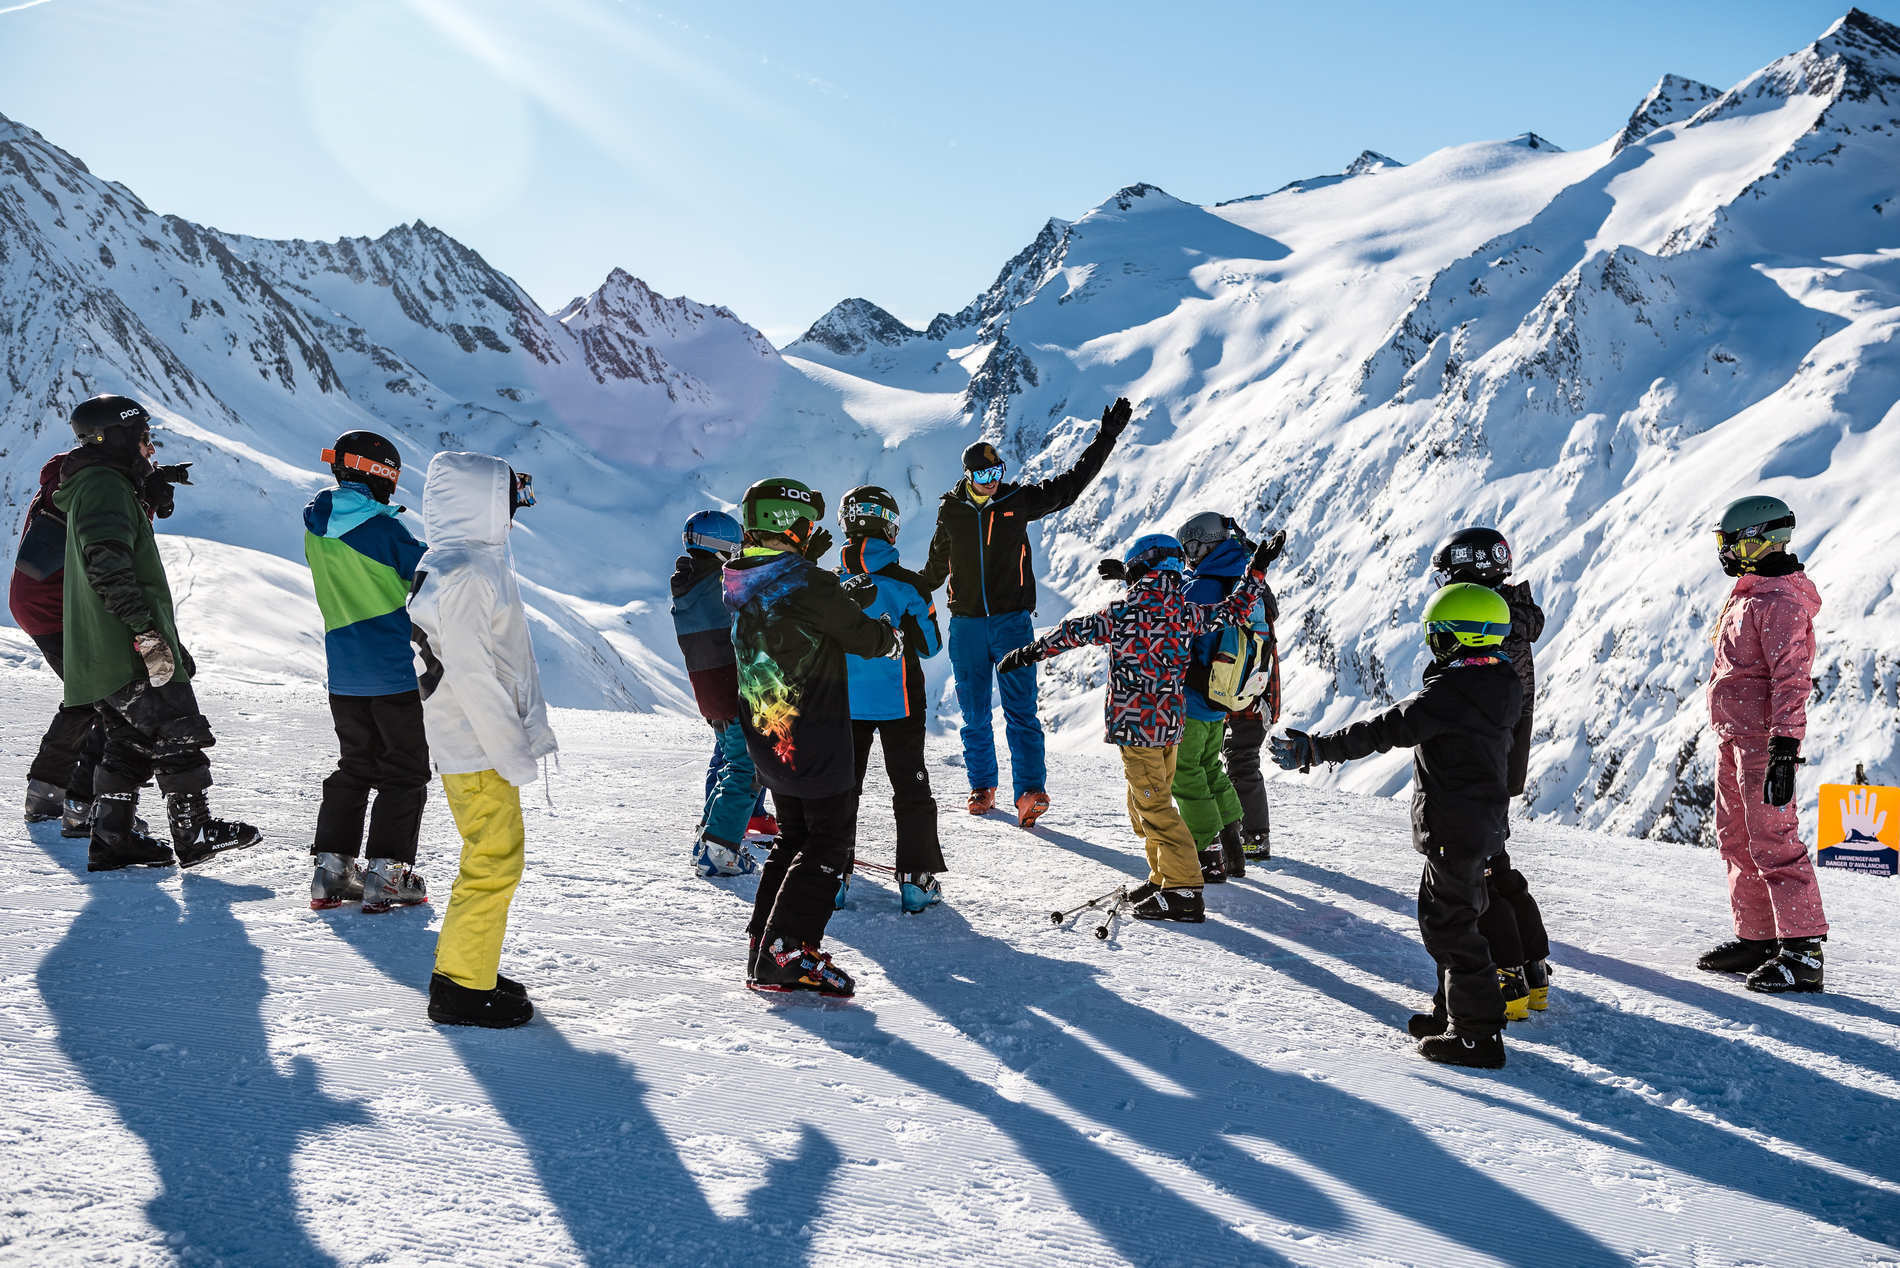 web obergurgl 15 02 2019 lifestyle fs sb christian riefenberg qparks 9